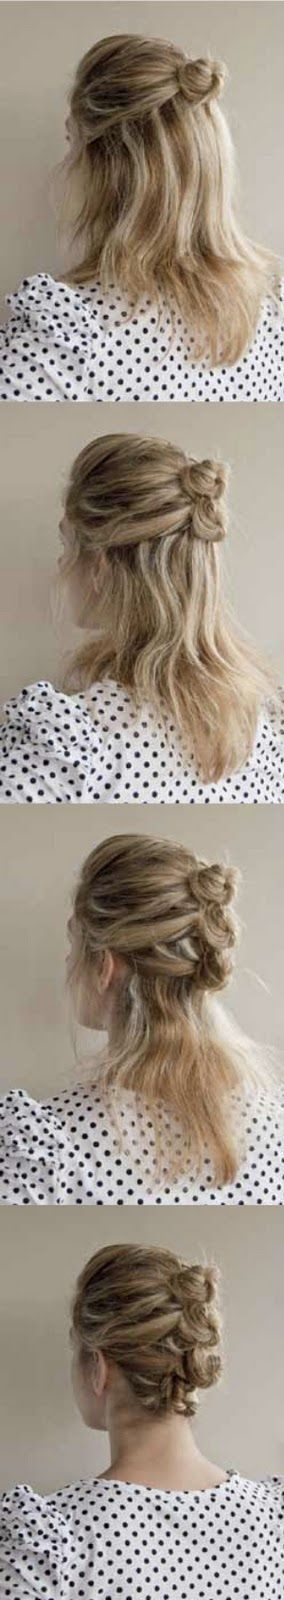 Cute hair idea with Twist Braid| http://twistbraidhairstyles787.blogspot.com